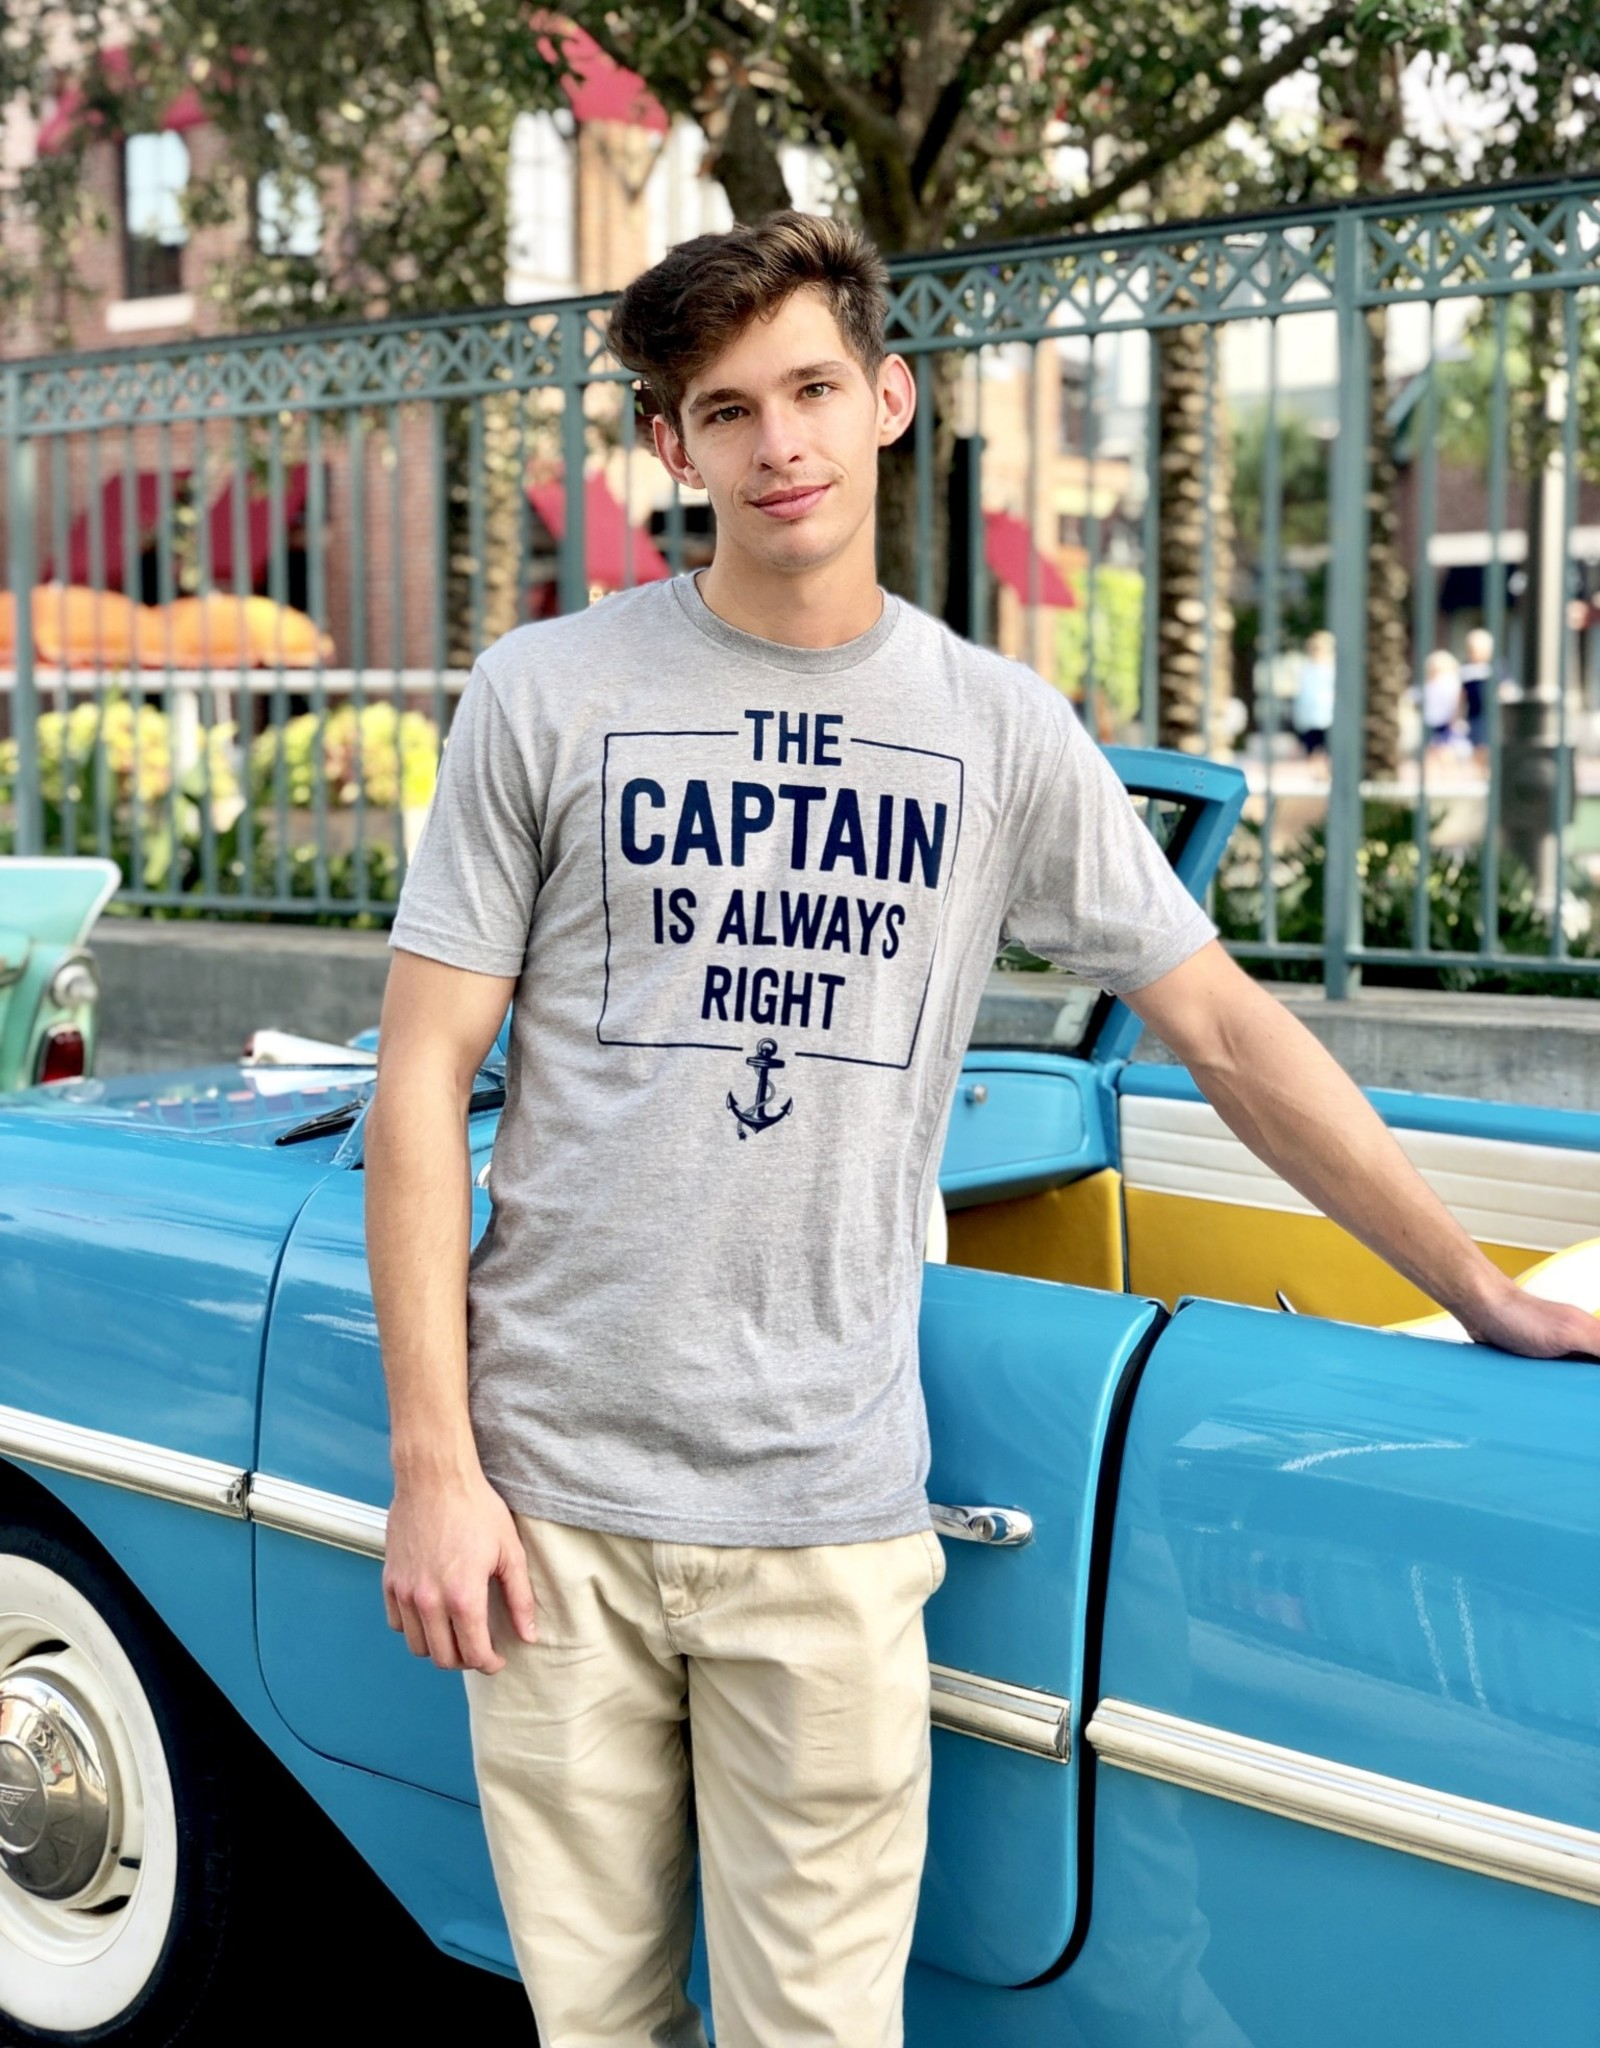 THE CAPTAIN IS ALWAYS RIGHT 2019 TEE